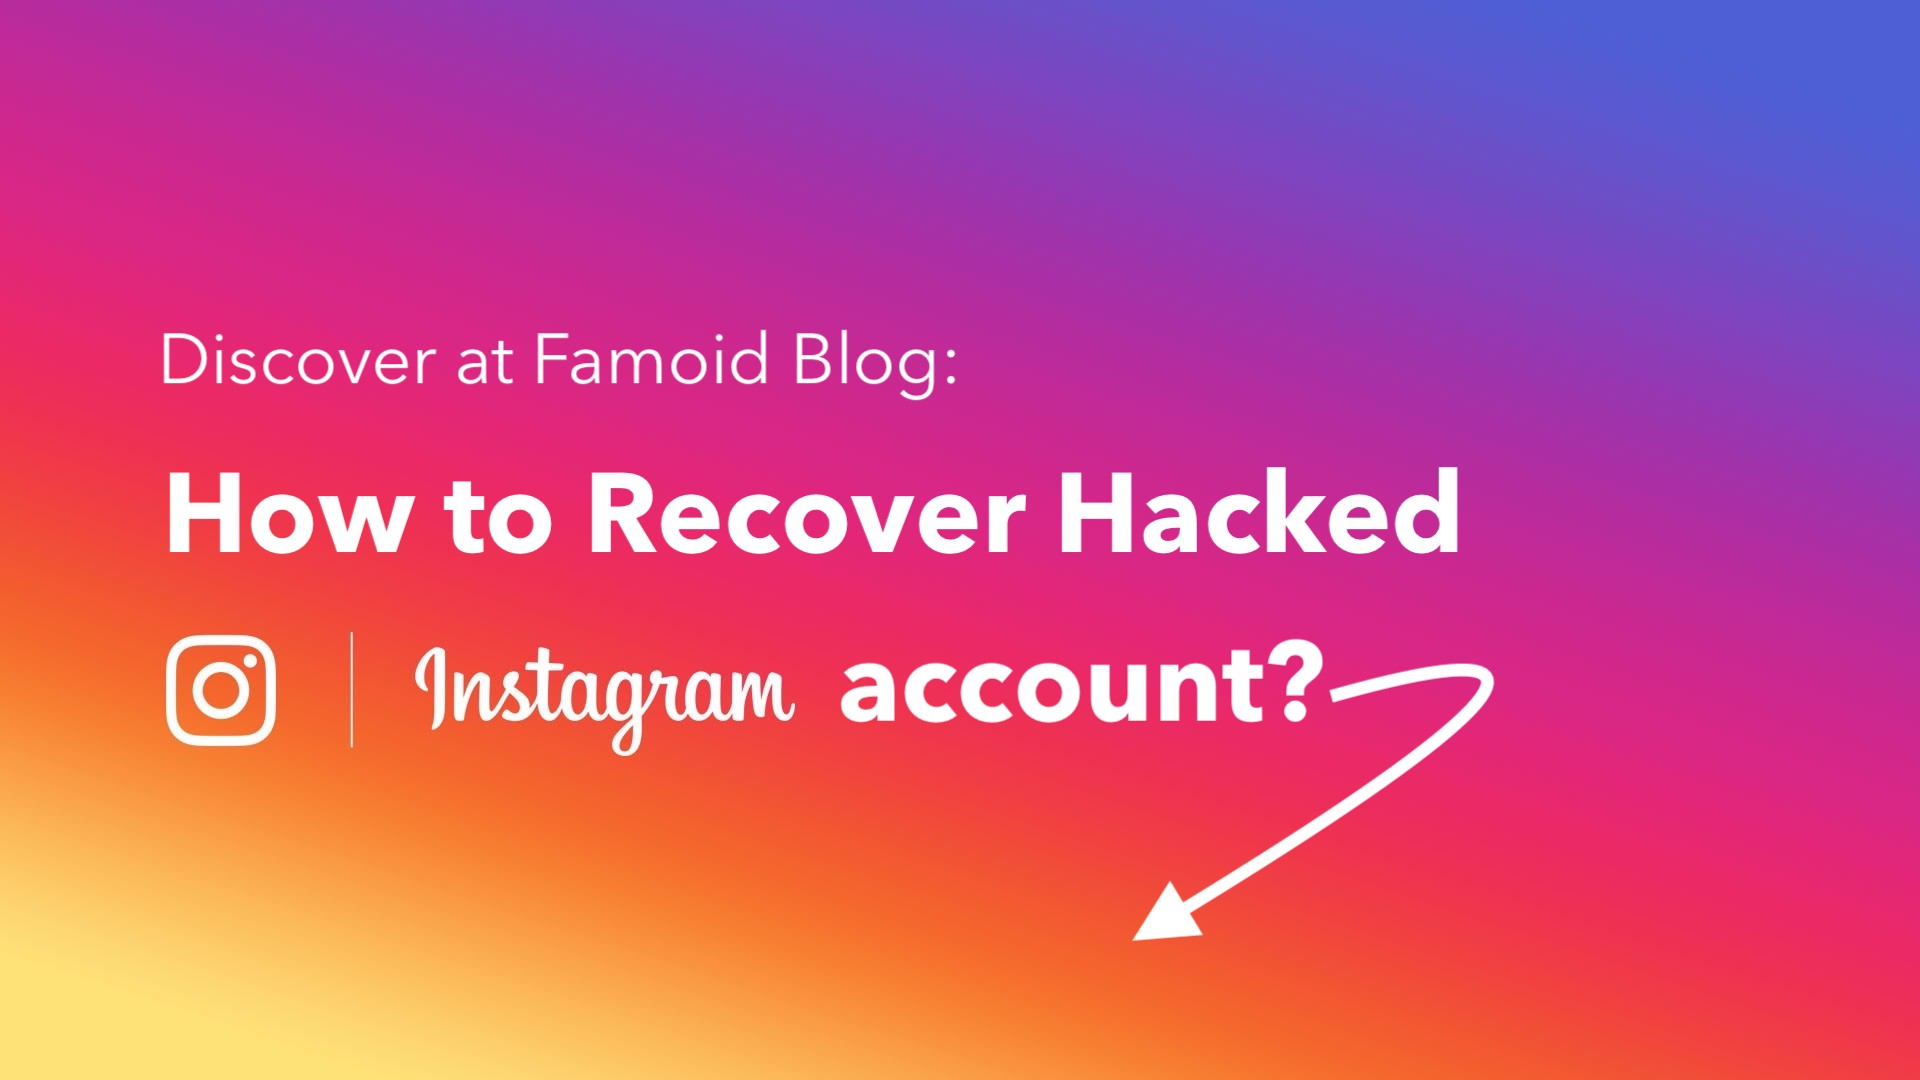 How to Recover Hacked Instagram Account? - Famoid